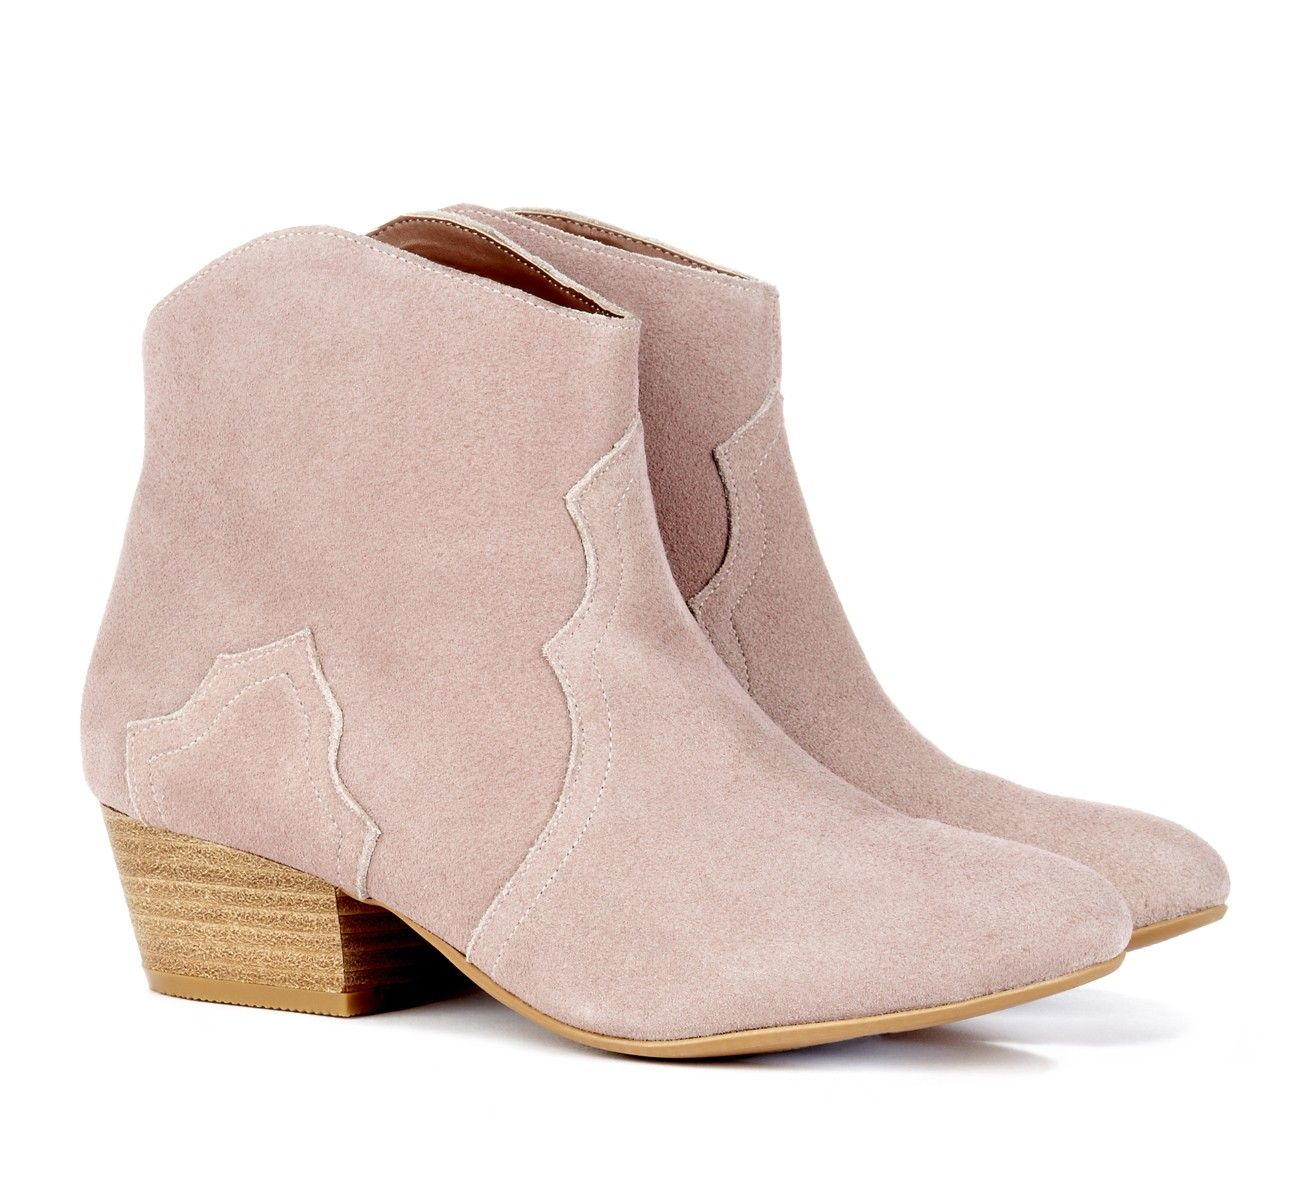 6384047e1673 Light Pink Cowgirl Booties | Music Festival and Concert Fashion ...